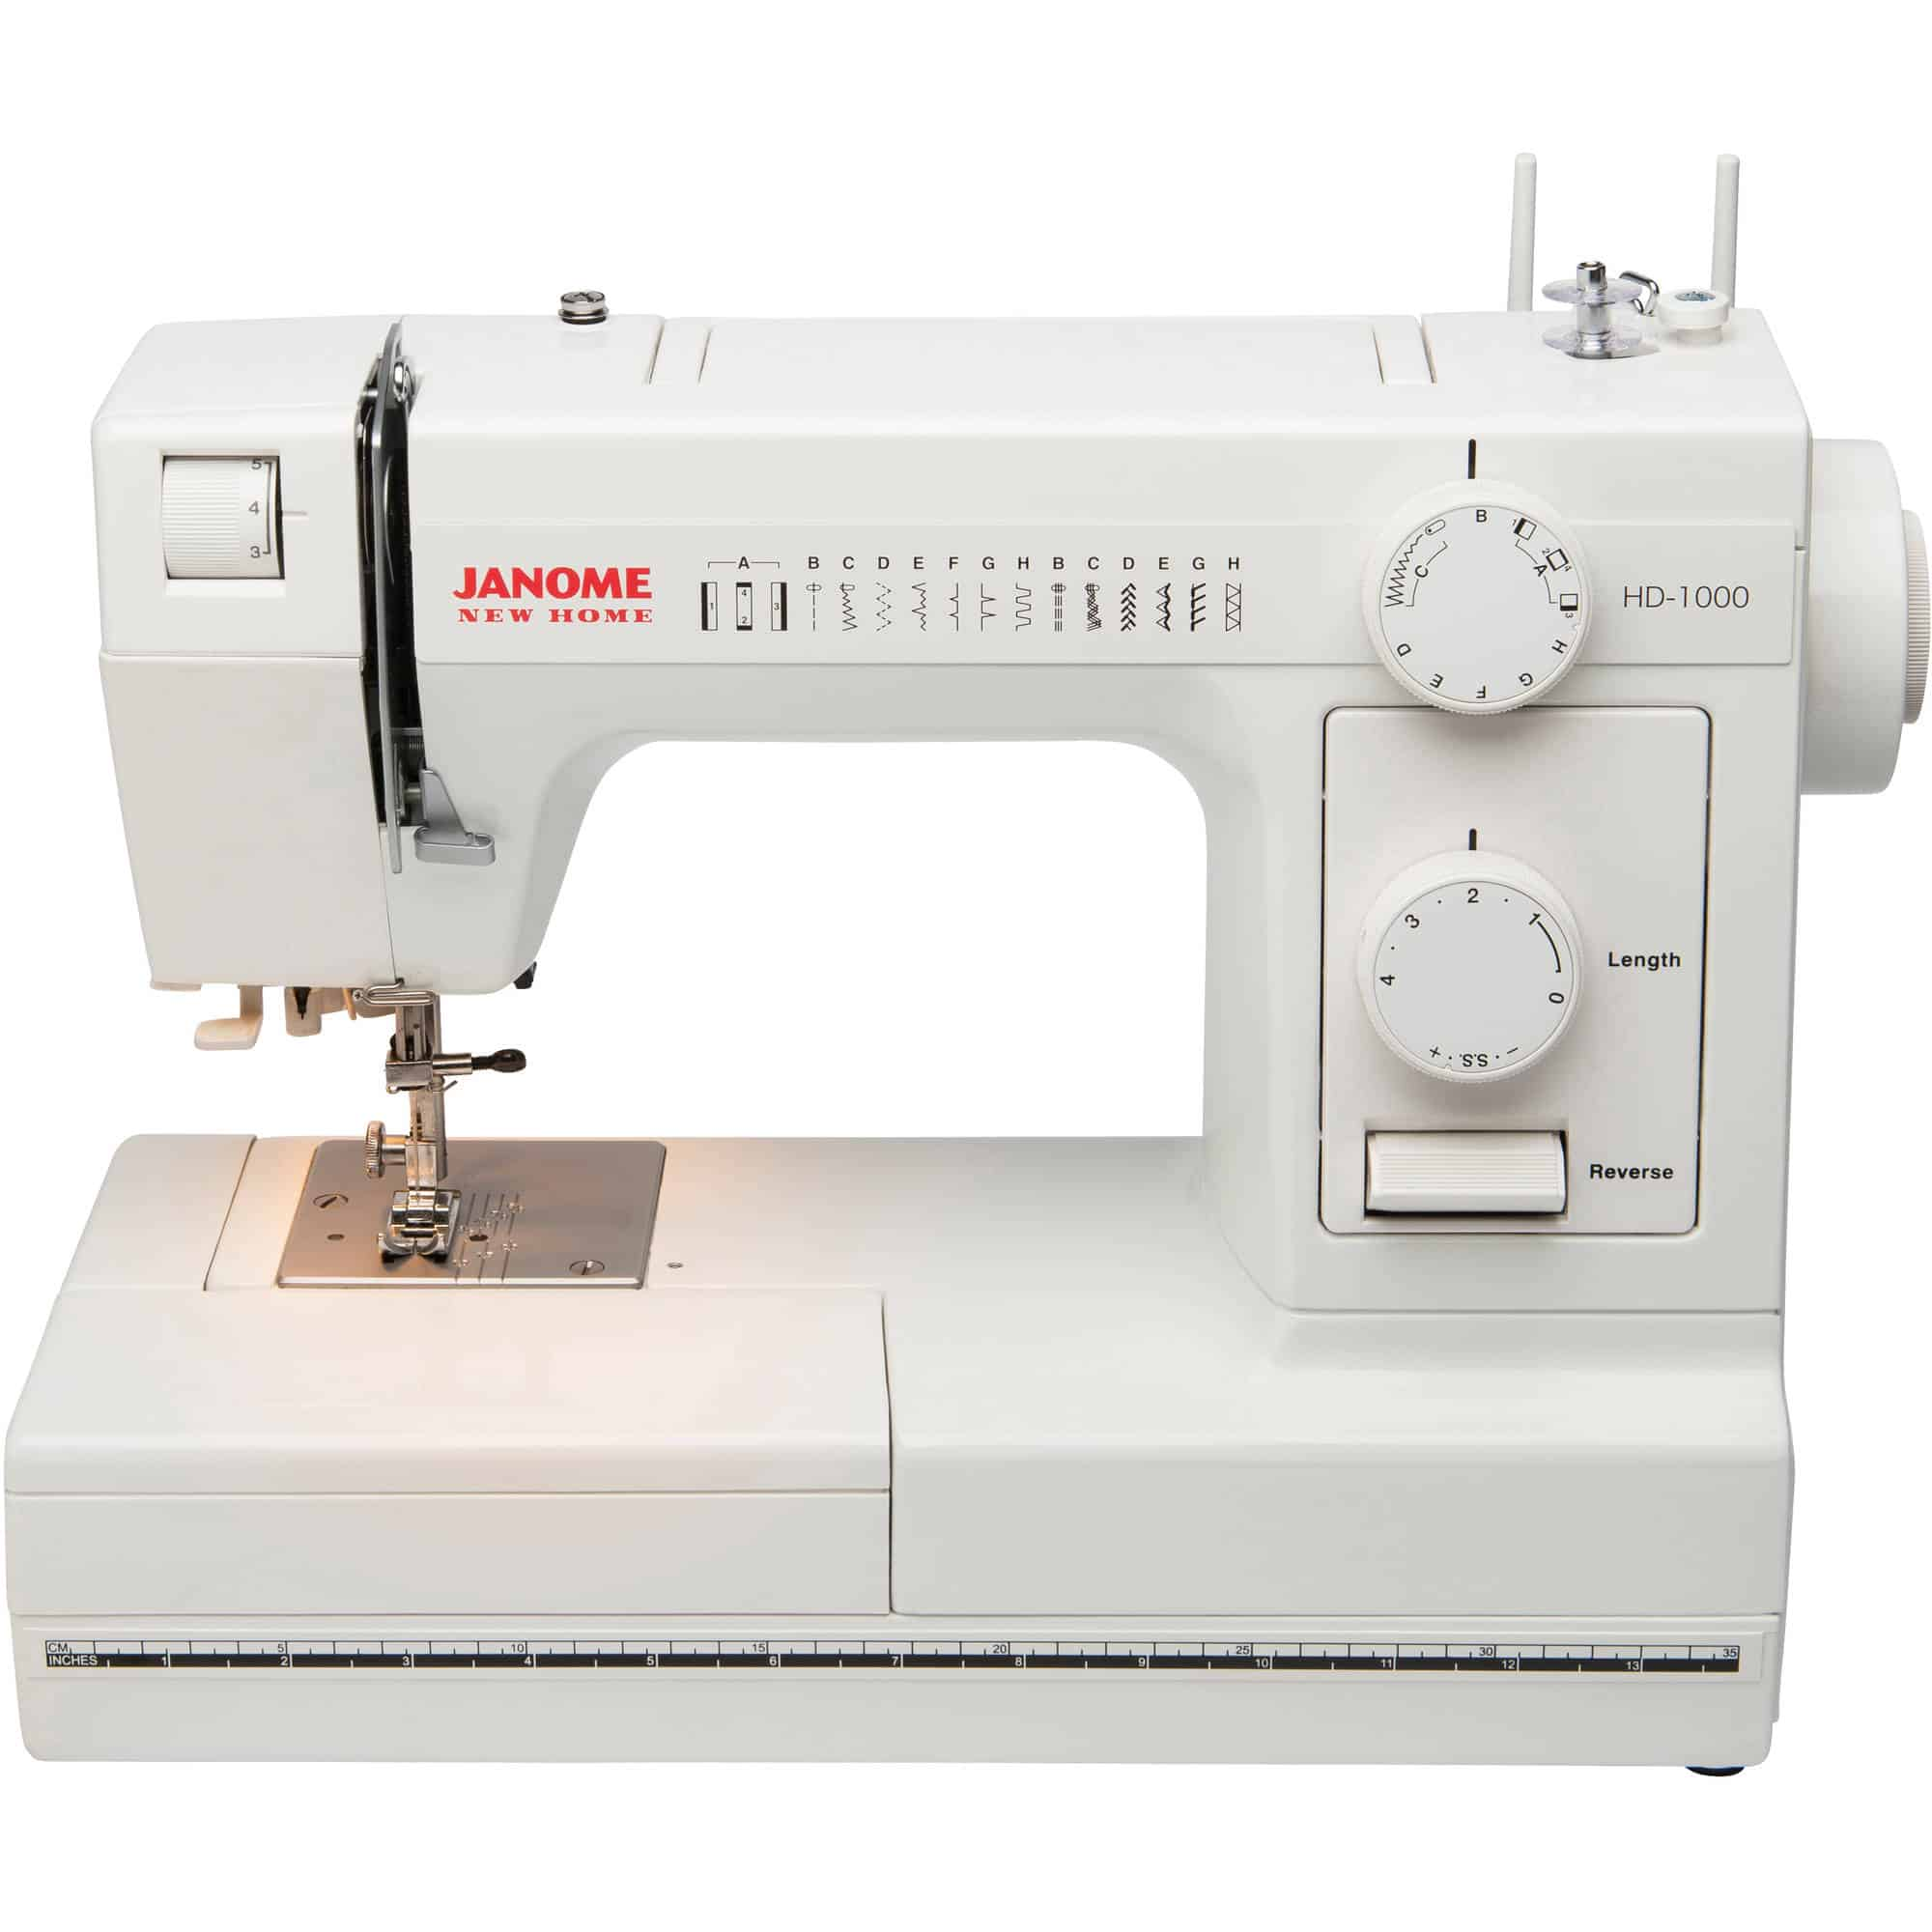 Cheap Sewing Machines Australia Best Heavy Duty Sewing Machine Reviews For Leather And Upholstery